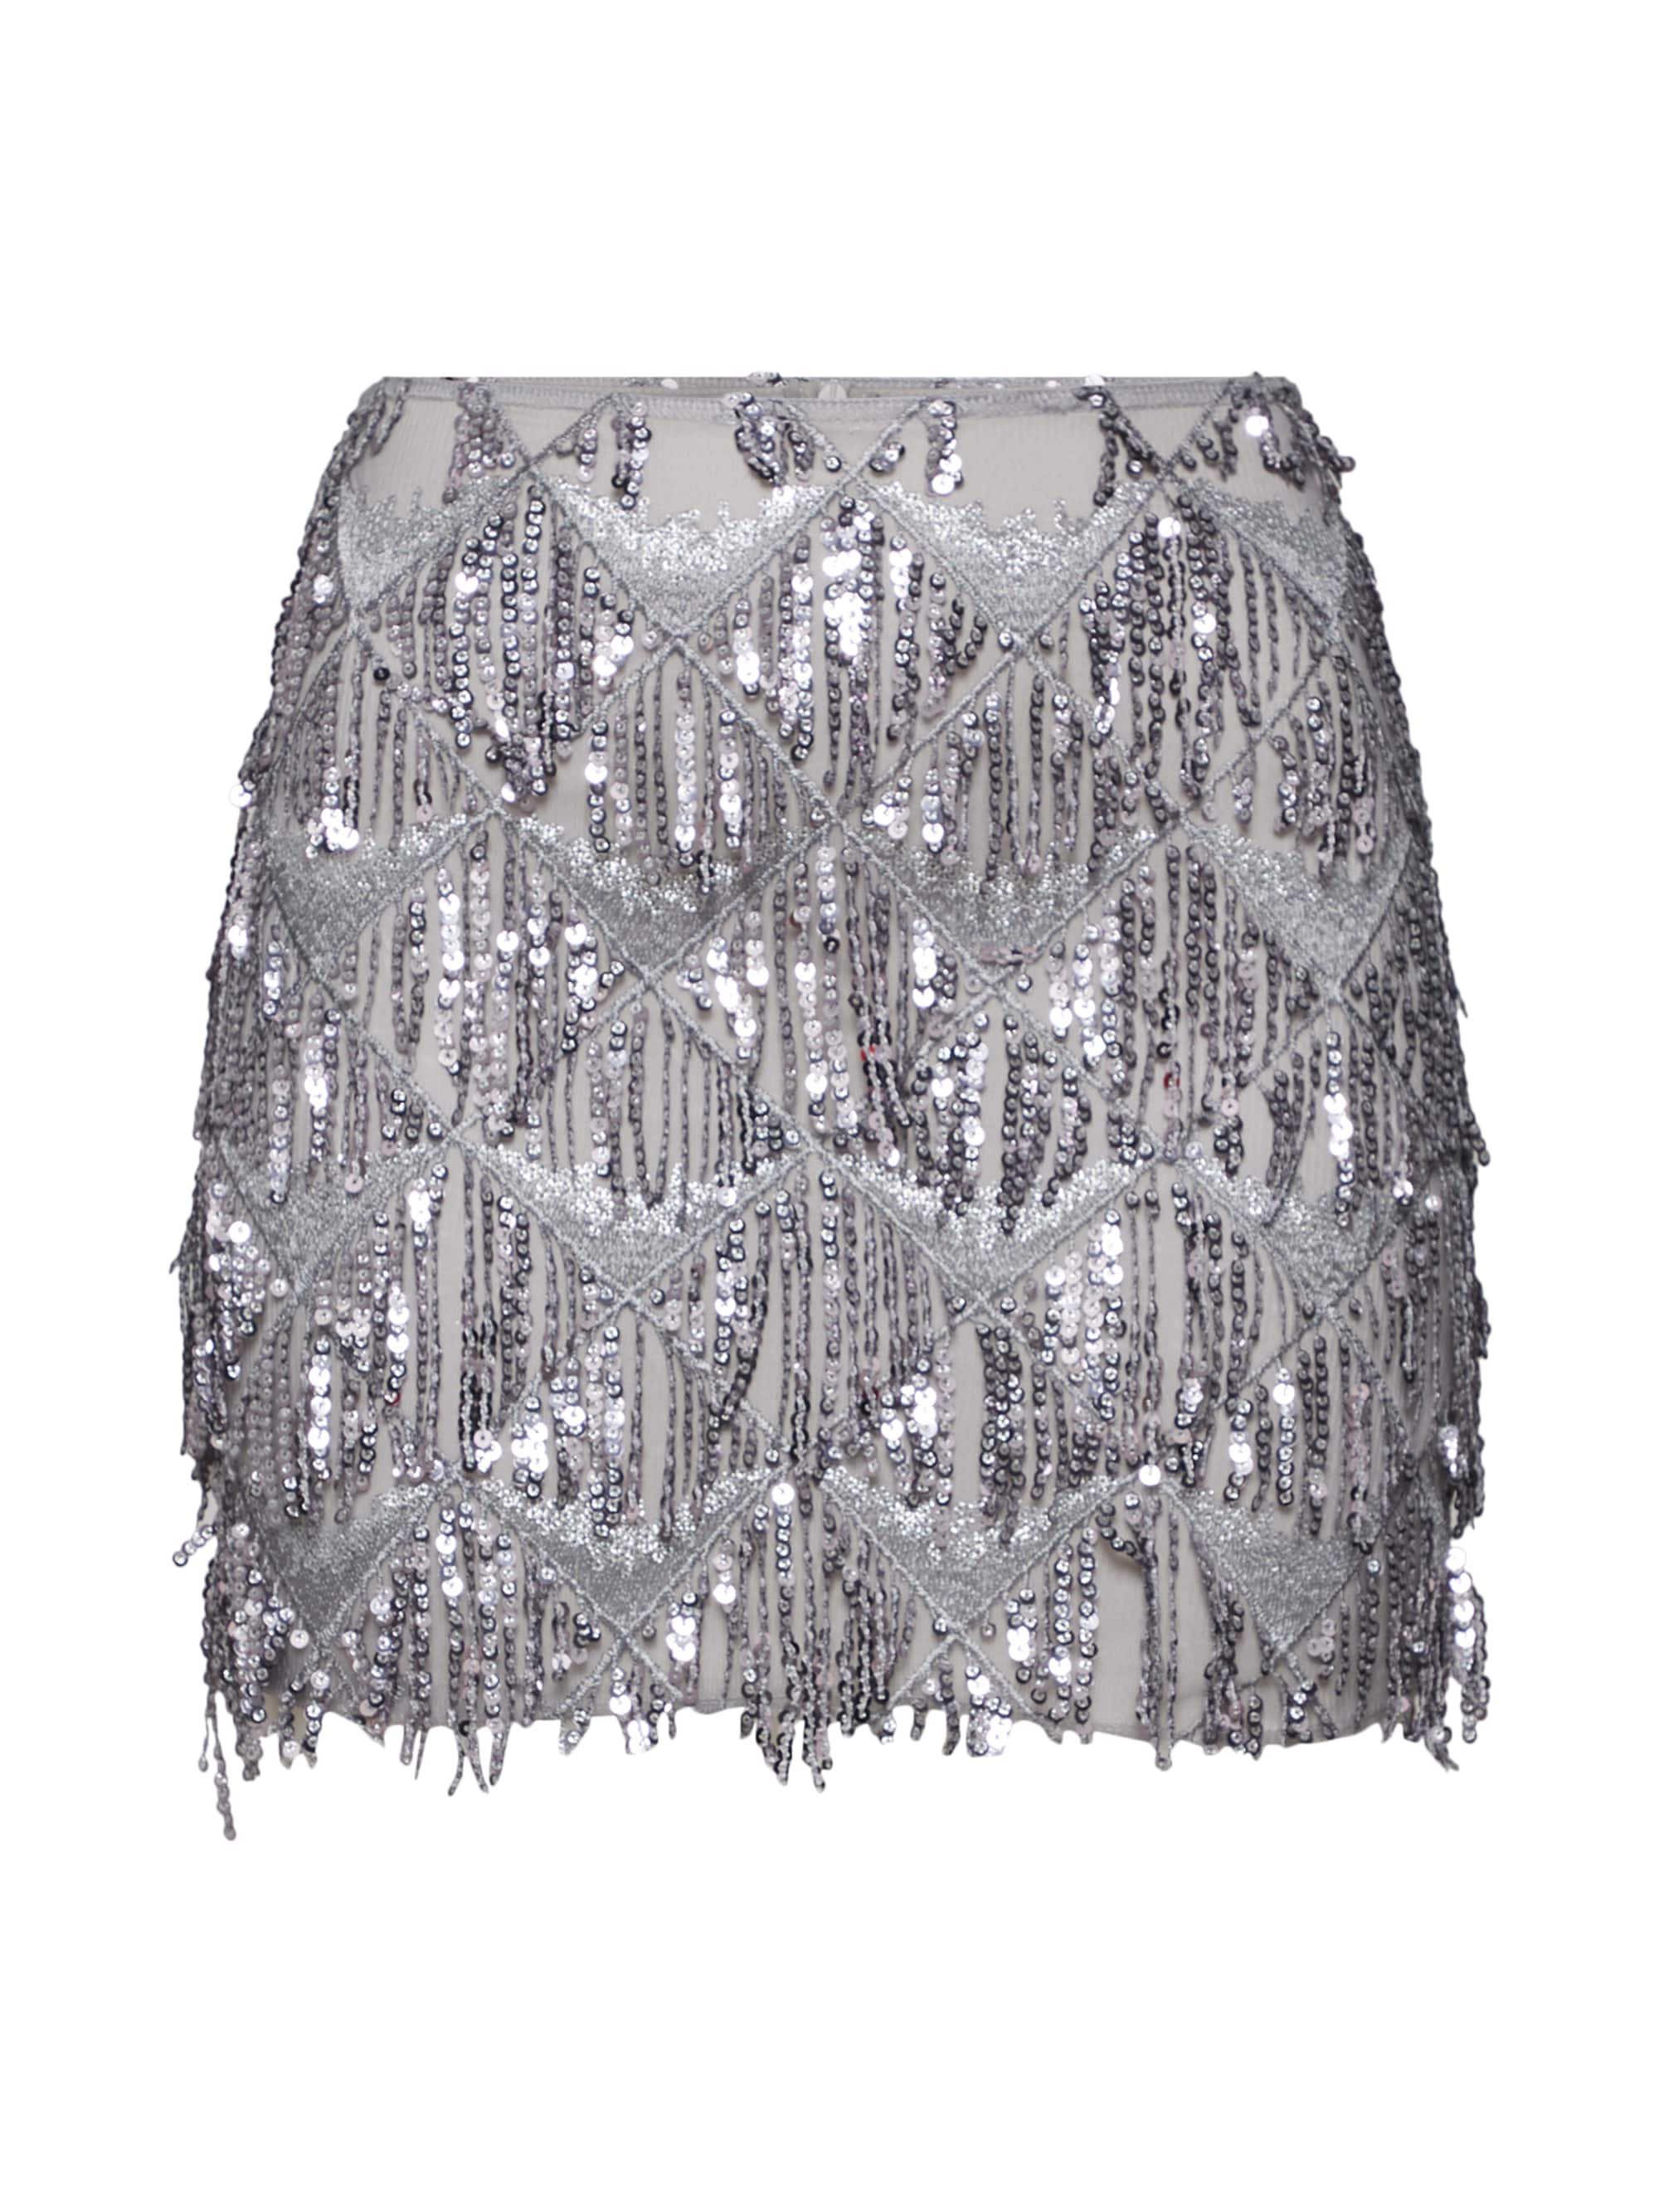 new look - Röcke ´27.04 WW GO SET DIAMOND SEQUIN SKIRT P173´